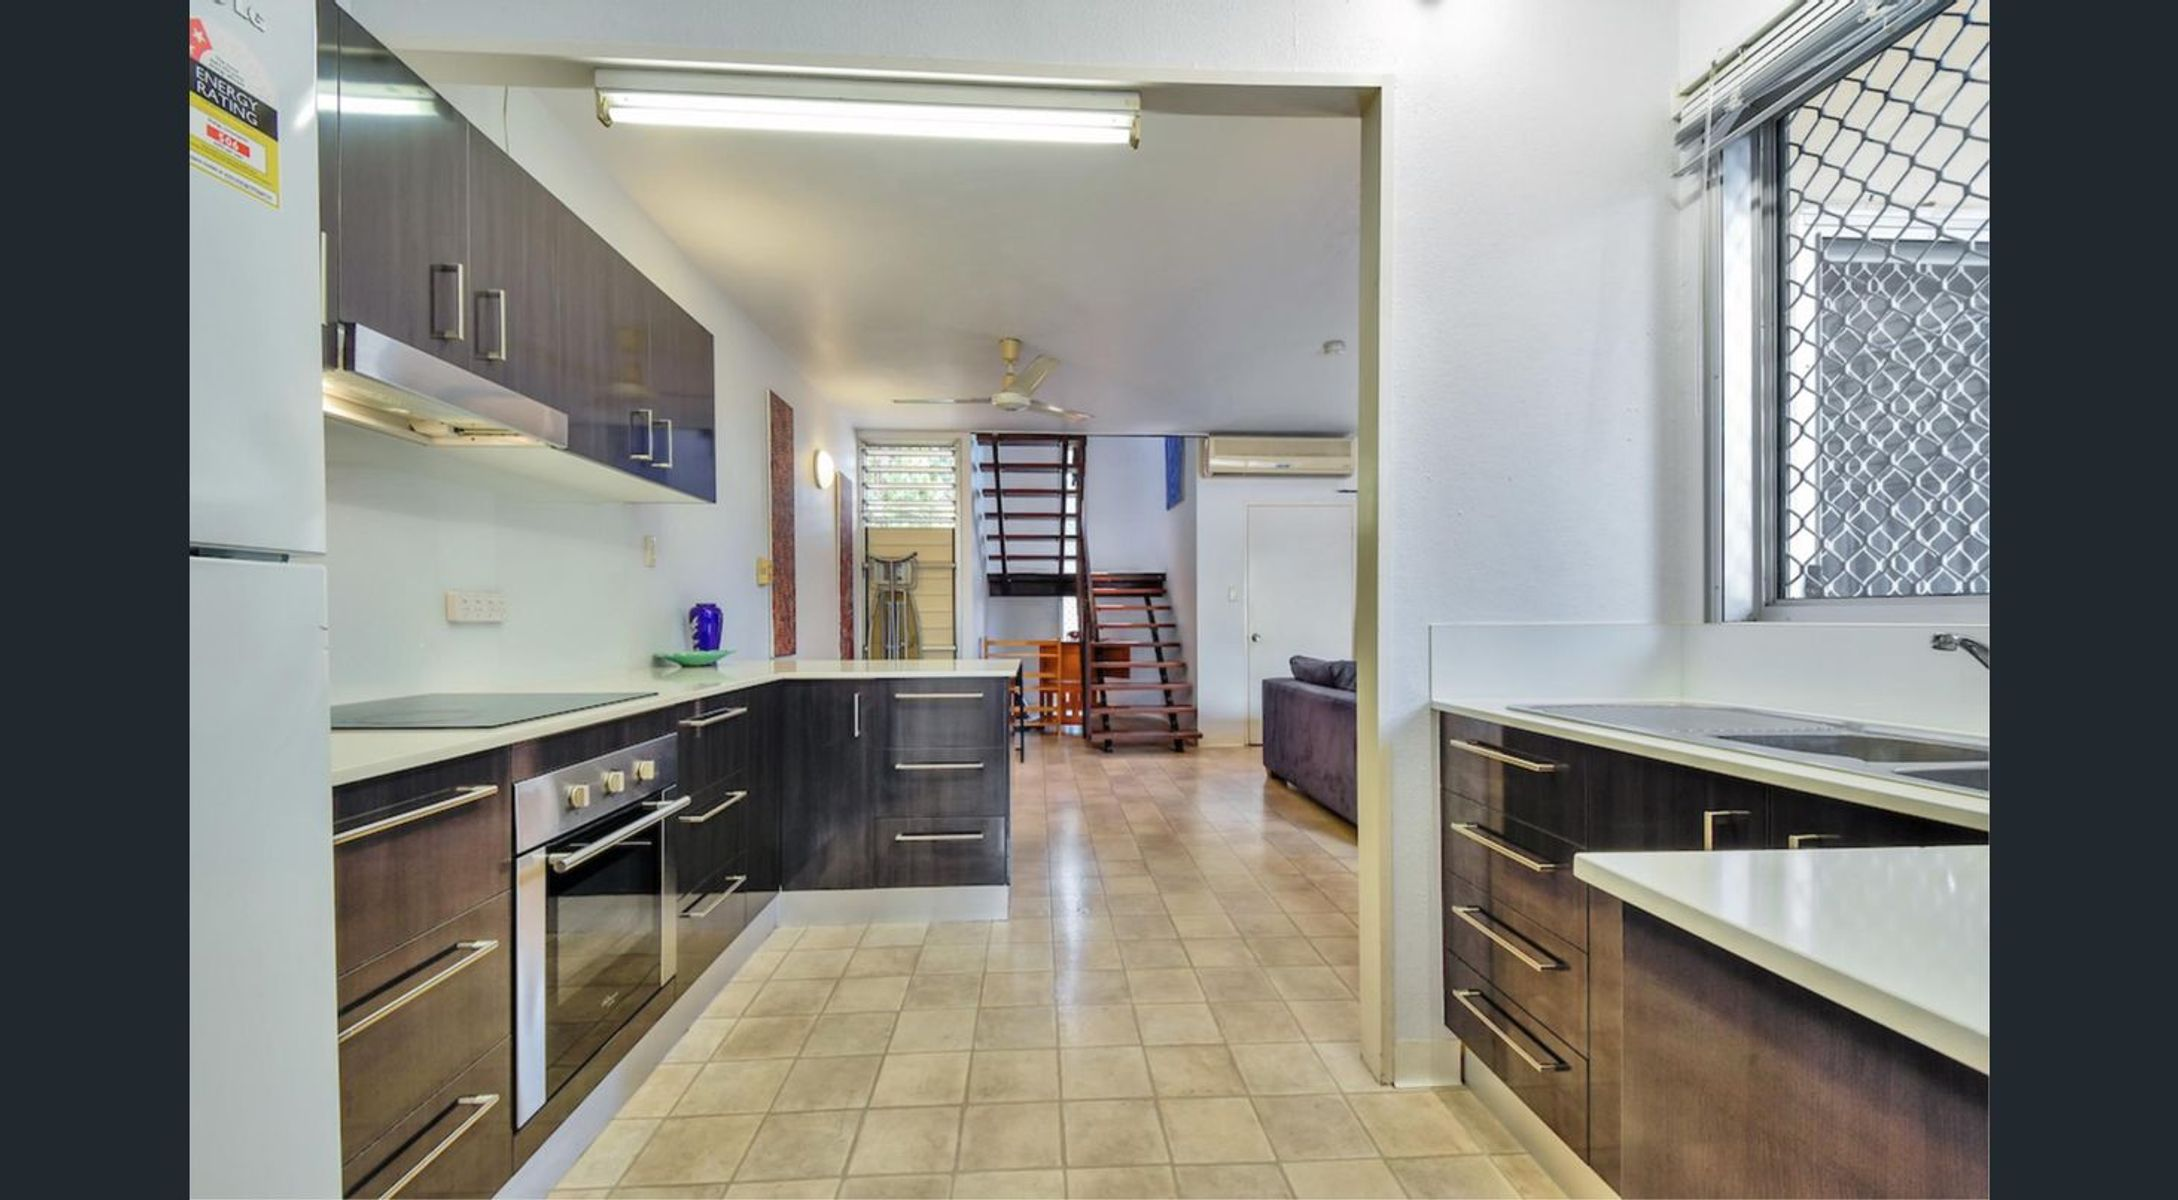 13/1 Frith Court, Malak, NT 0812